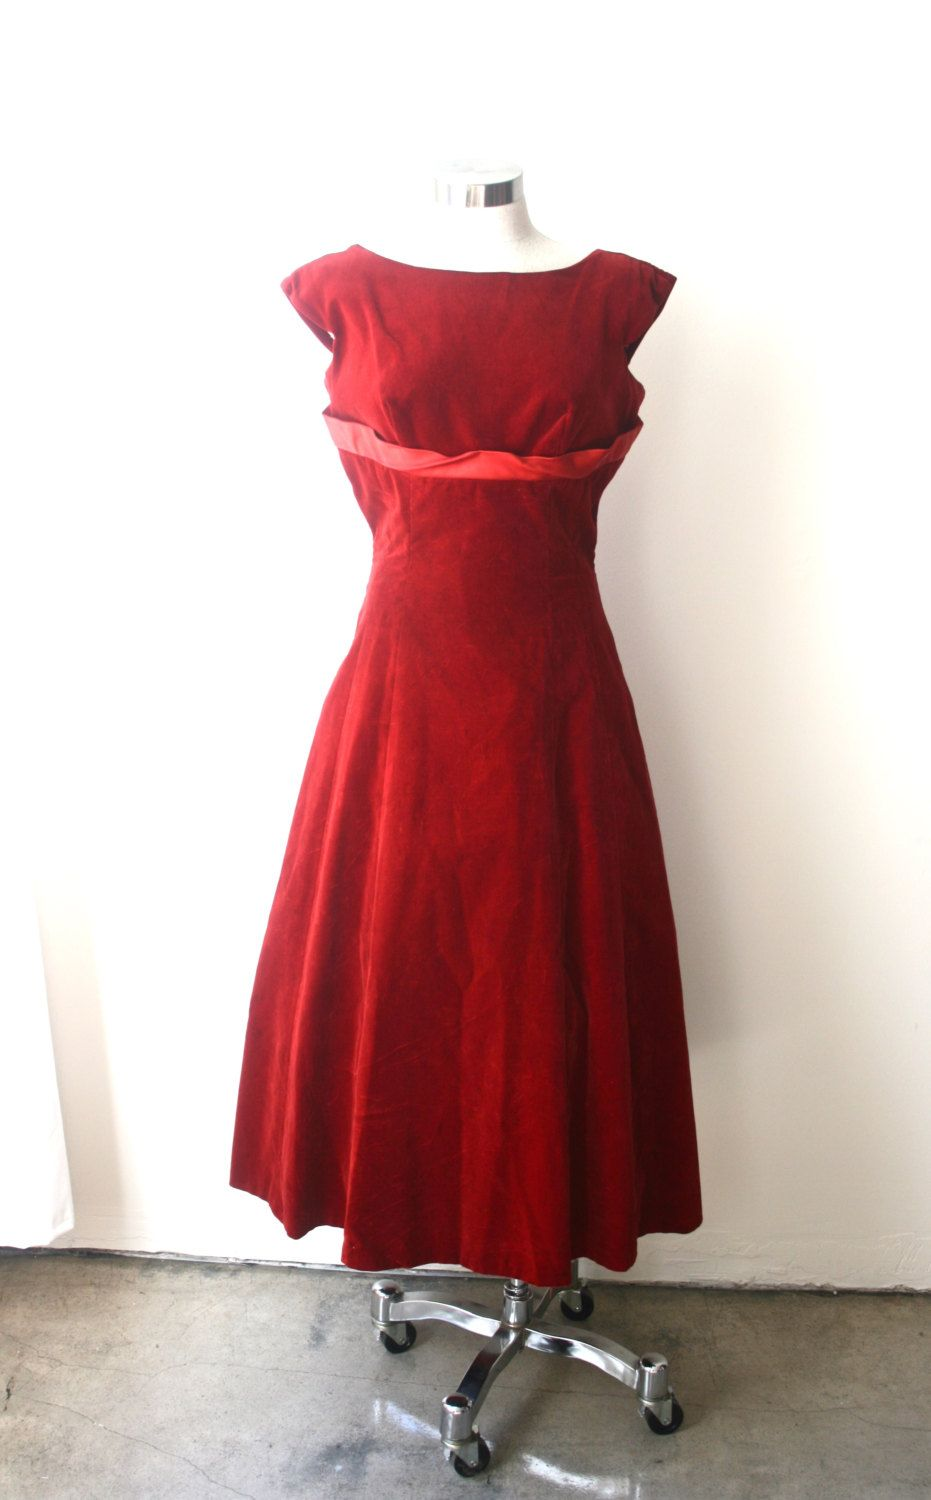 M s s red velvet cocktail party dress winter ball cranberry by